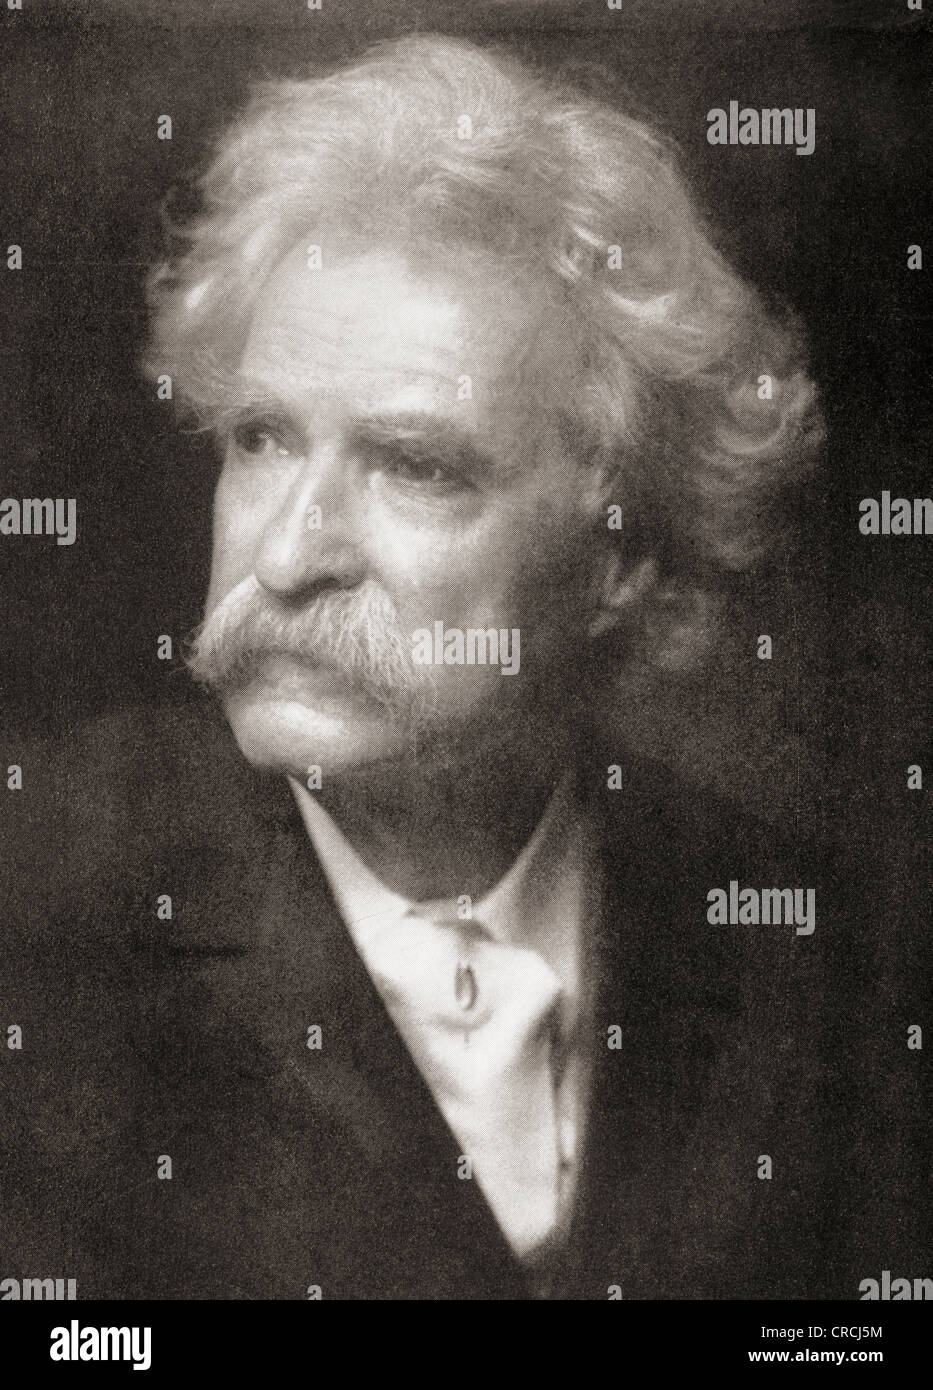 Samuel Langhorne Clemens, 1835 –1910, better known by his pen name Mark Twain. American author and humorist. - Stock Image